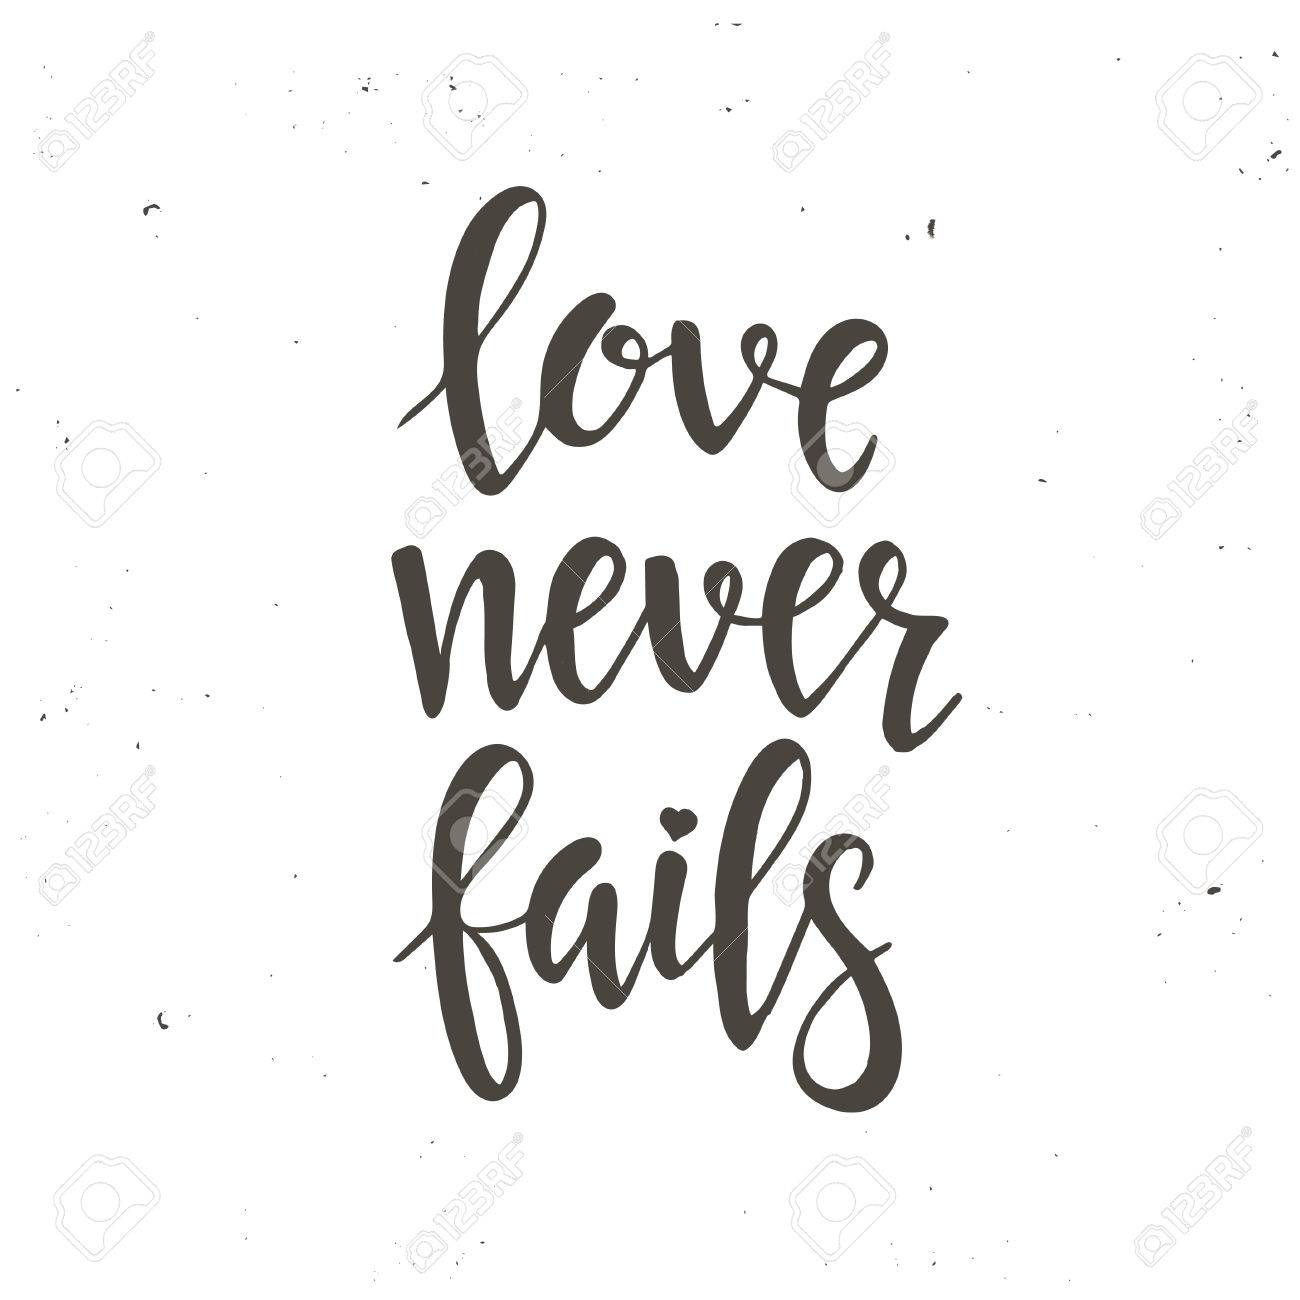 Love Never Fails Hand Drawn Typography Poster T Shirt Lettered Calligraphic Design